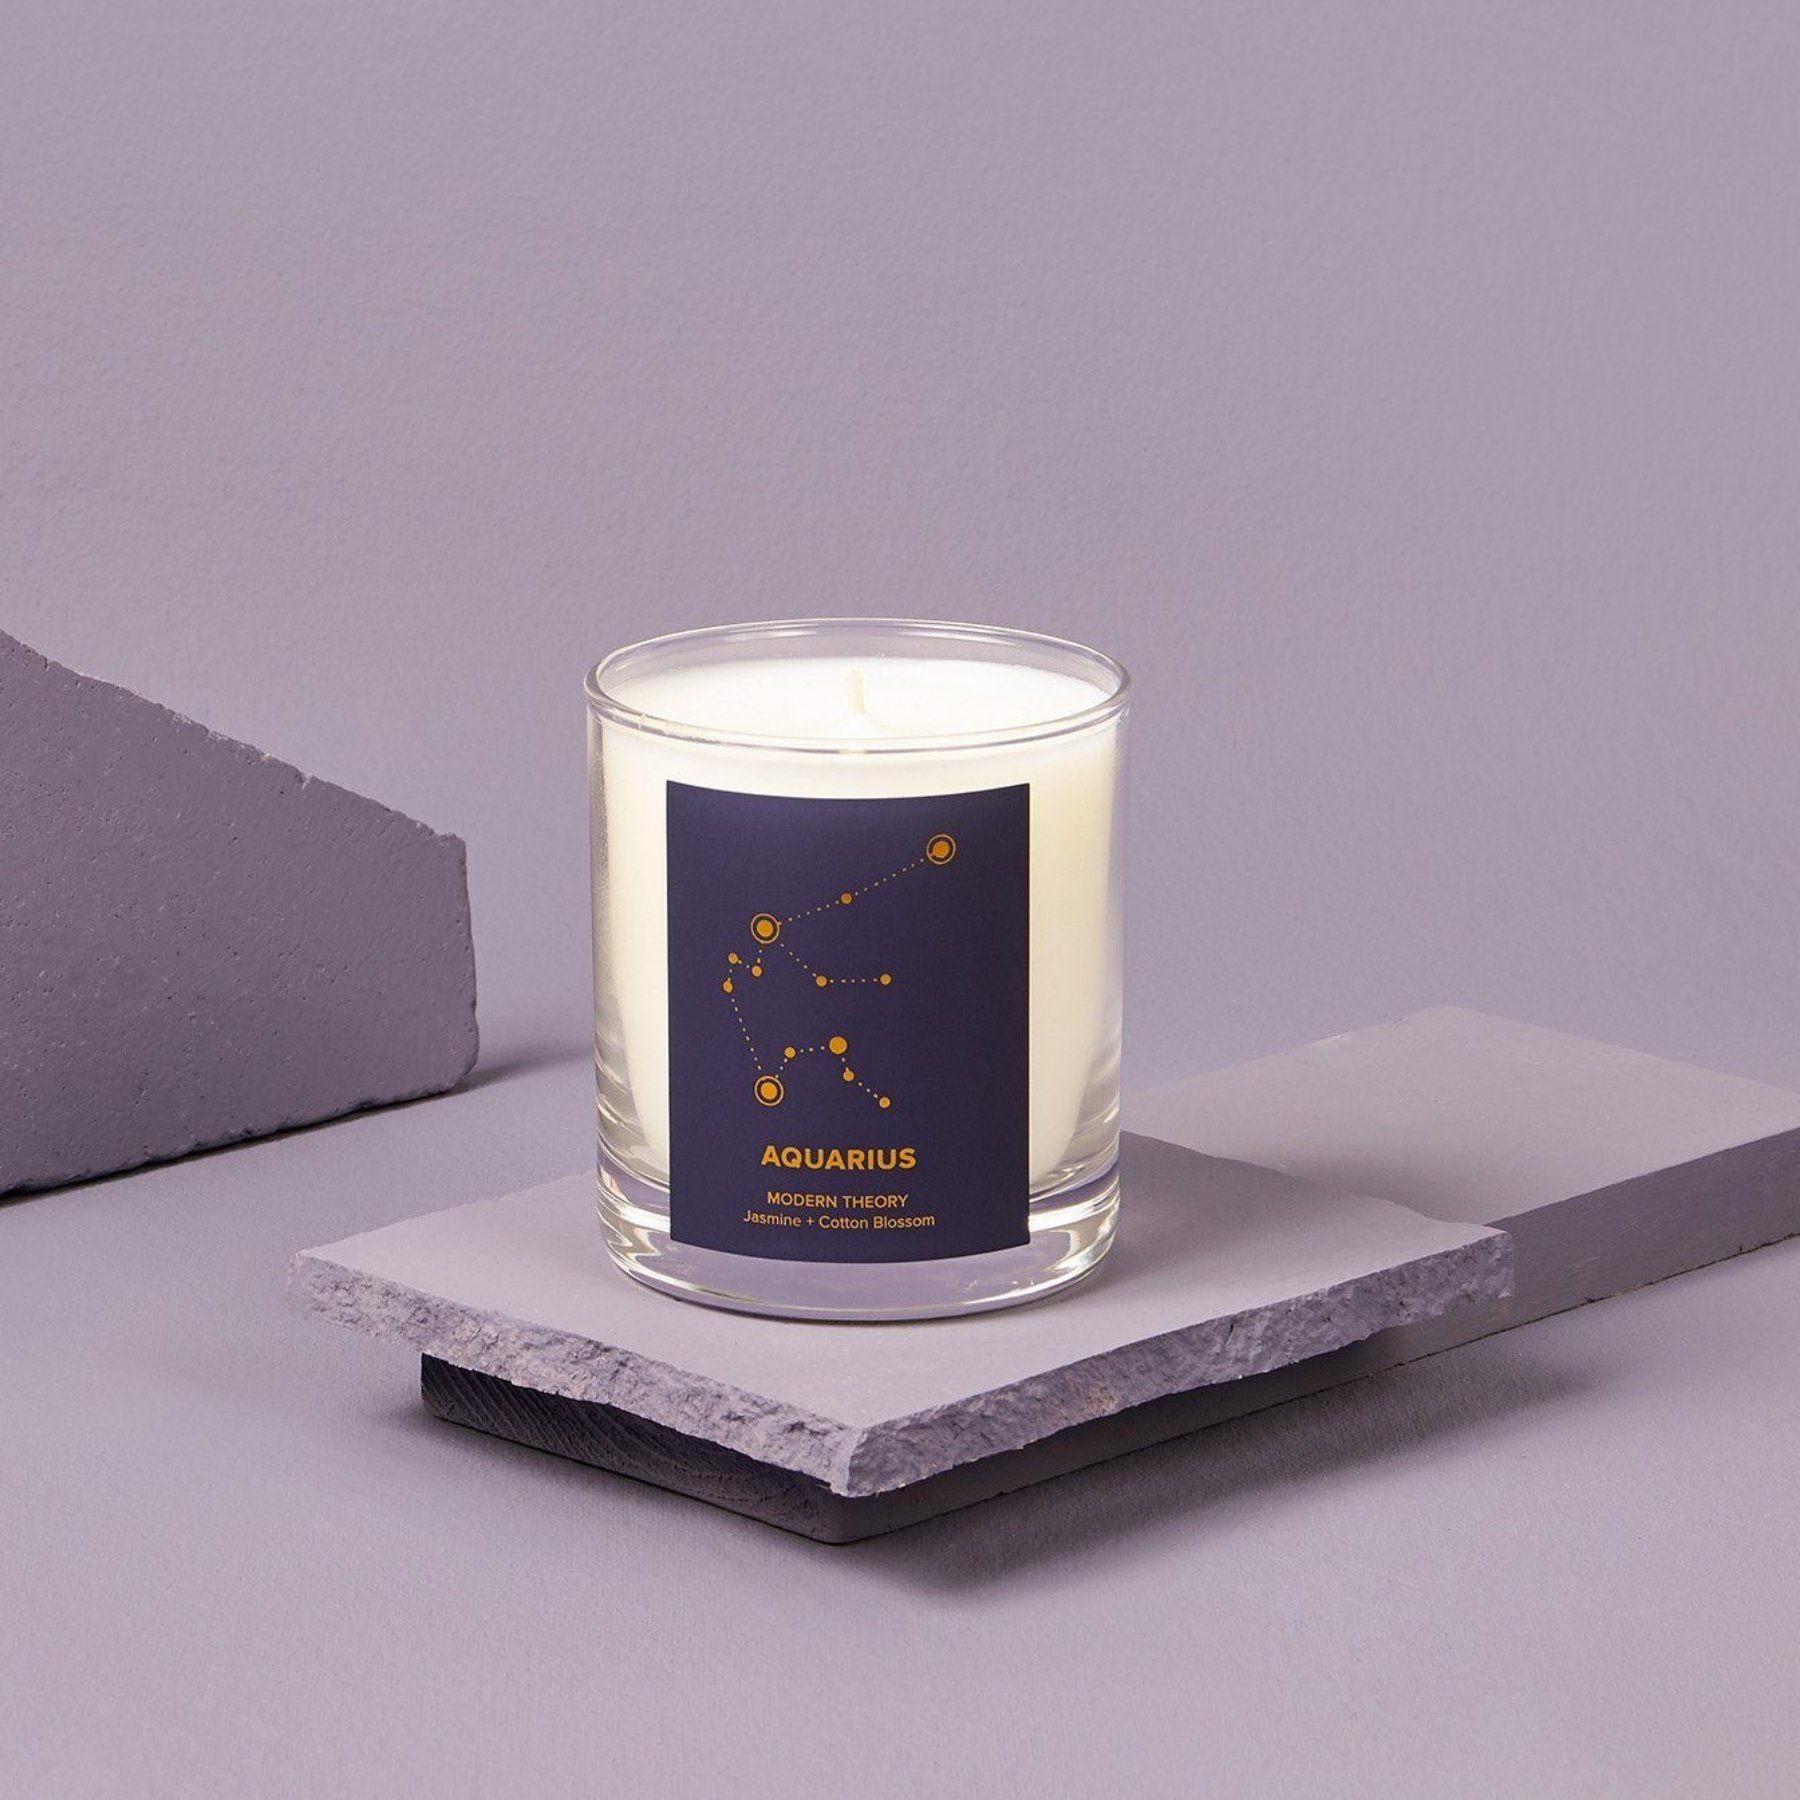 single white candle in glass jar with Aquarius written on the navy blue label.